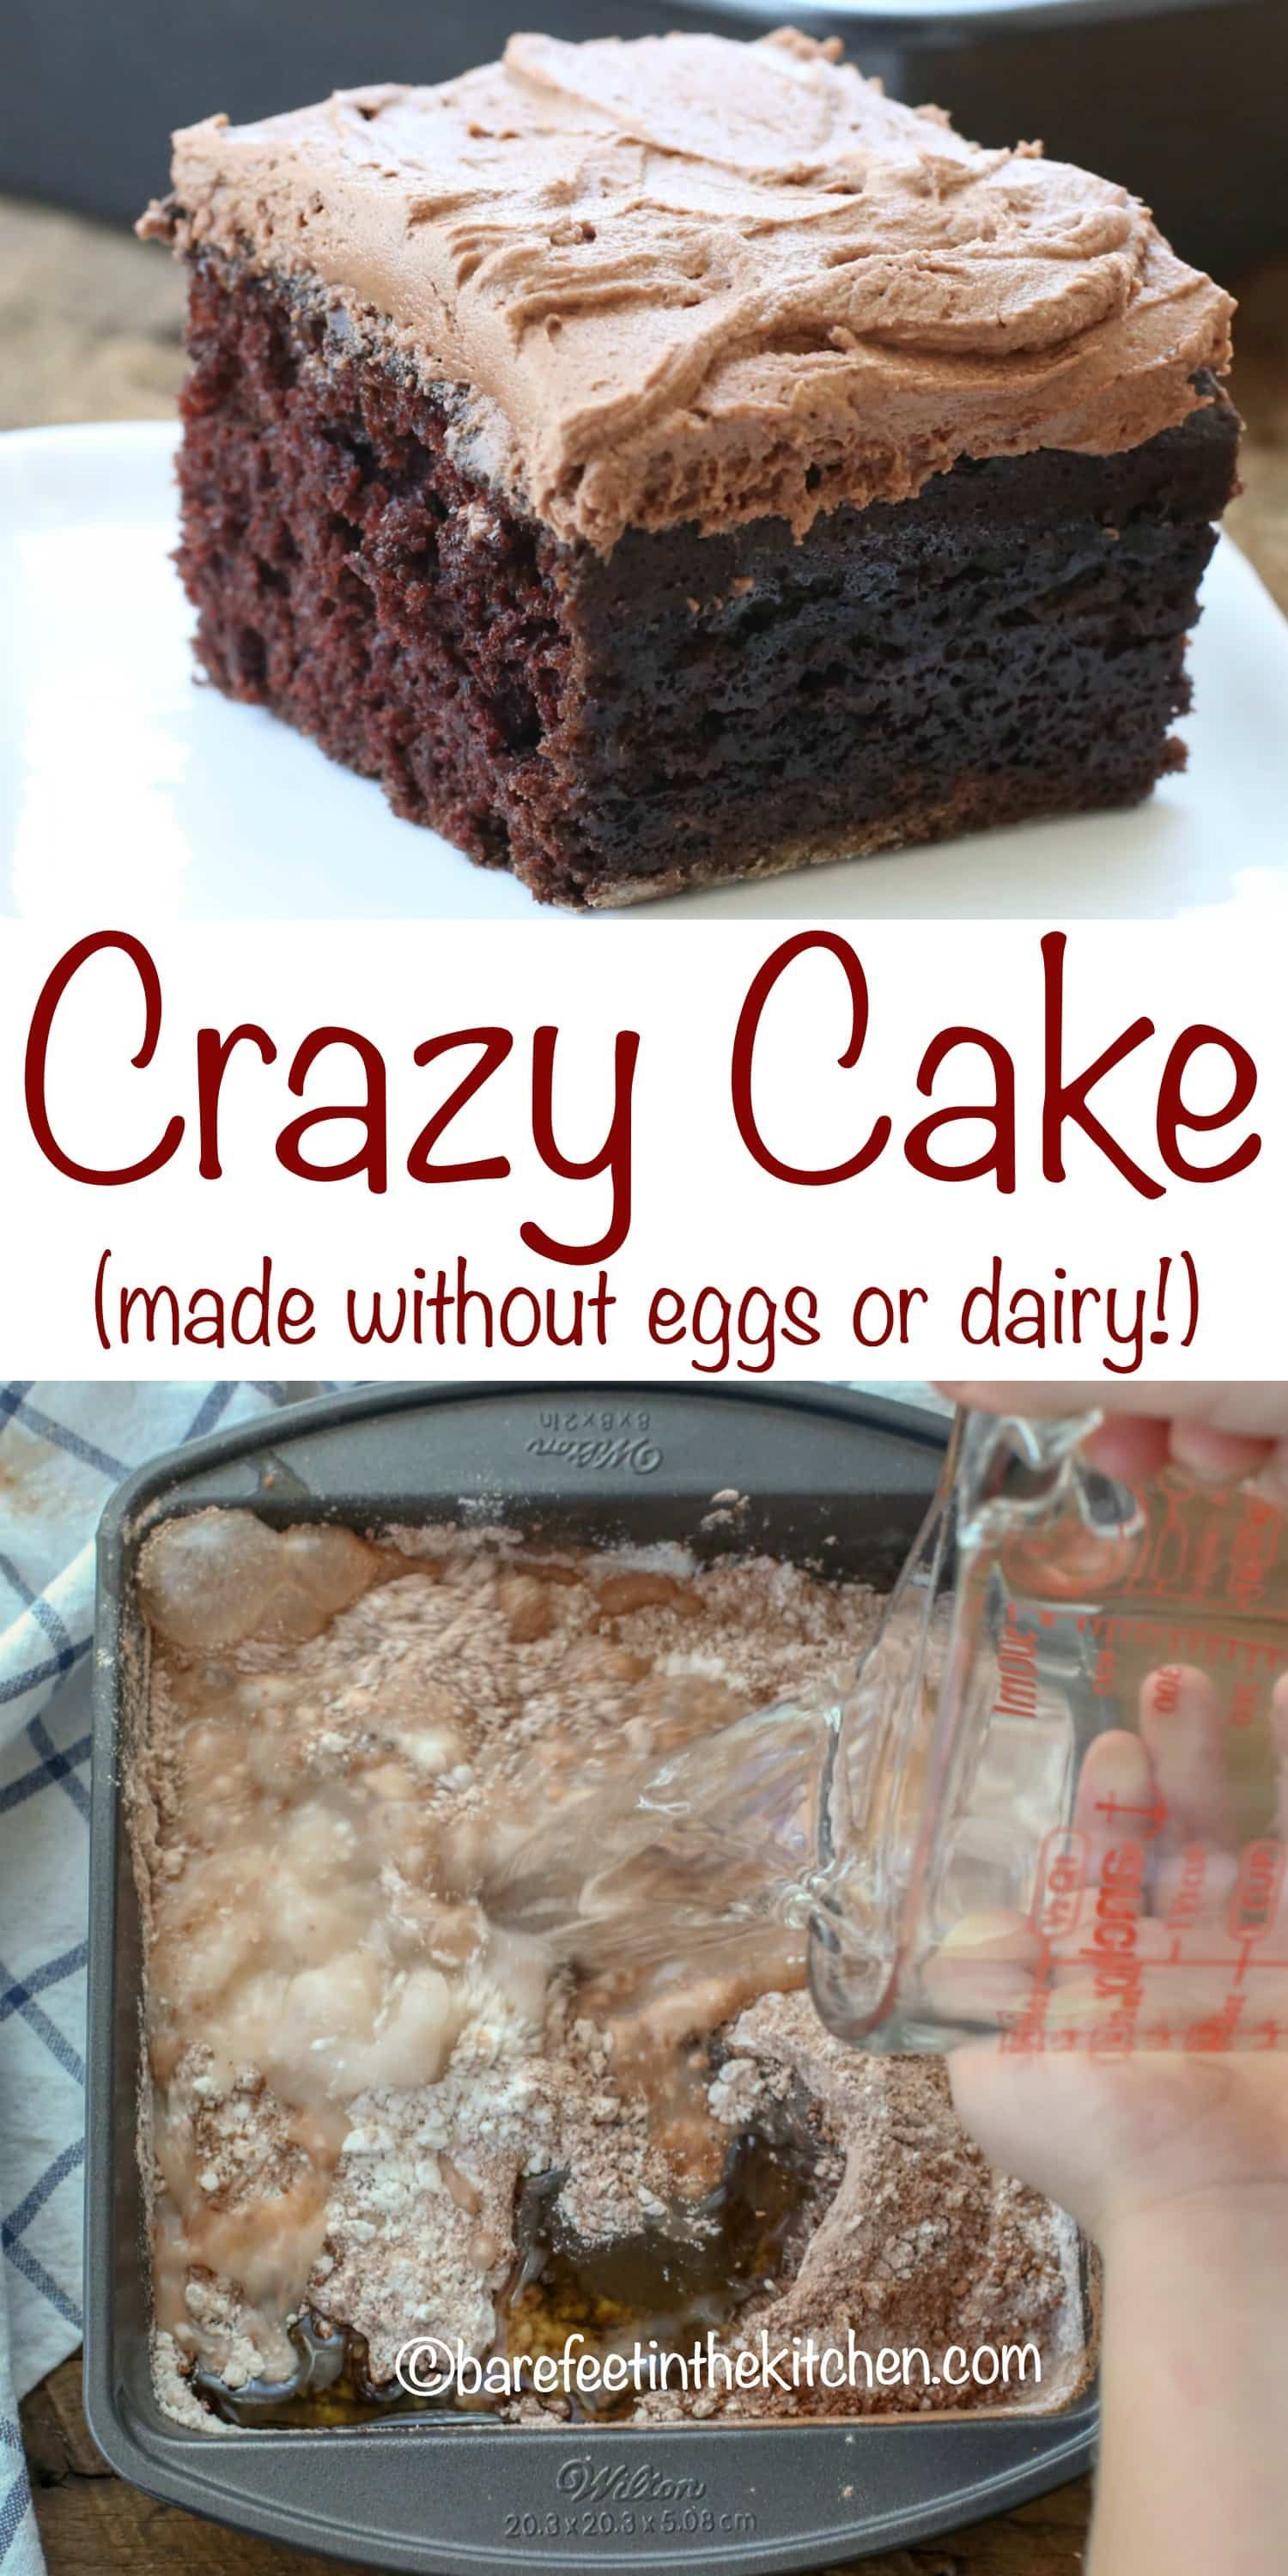 Crazy Cake | Crazy cake recipes, Cake recipes, Crazy cakes